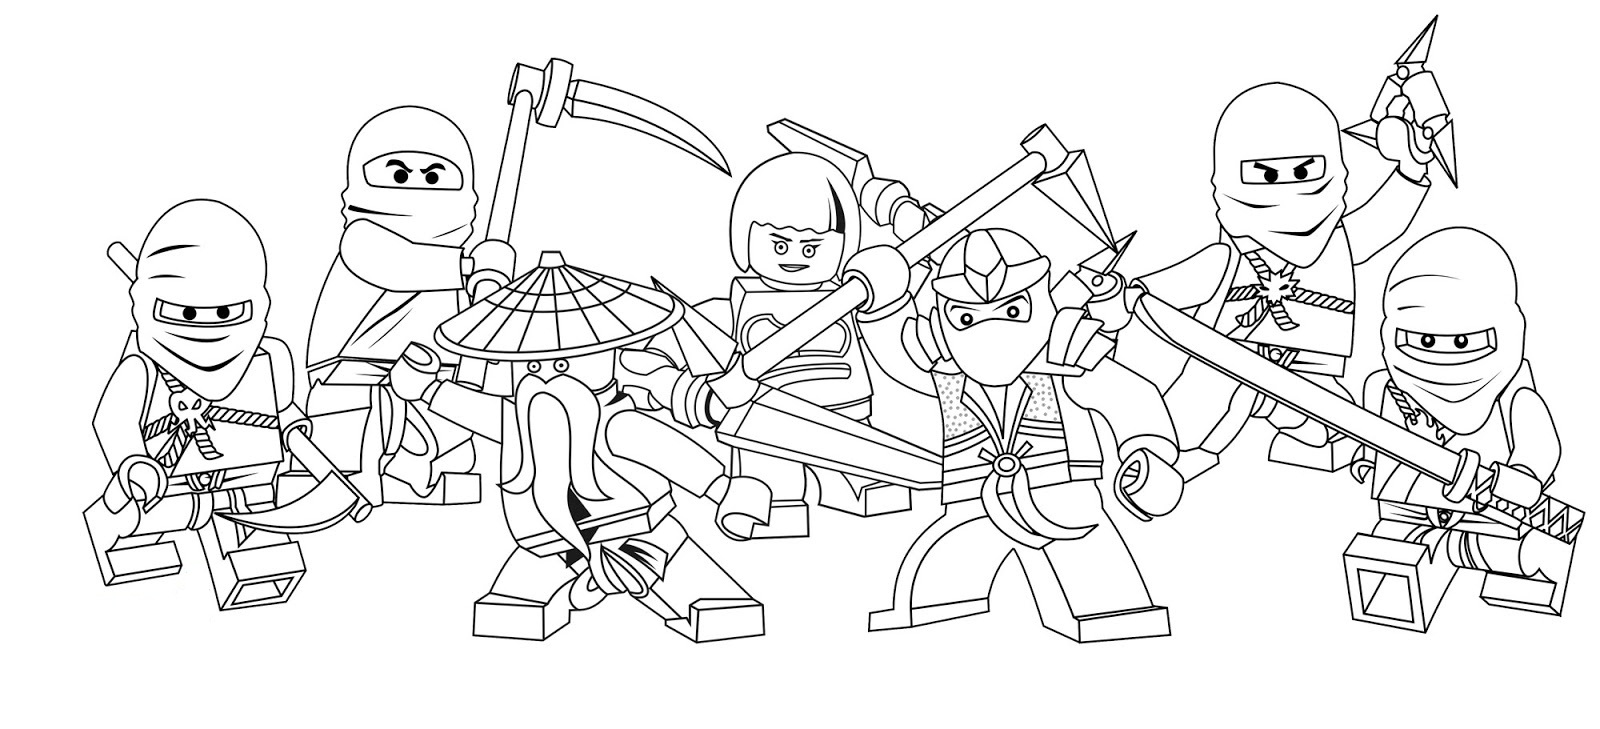 Free Printable Ninjago Coloring Pages For Kids Lego Ninjago Coloring Pages